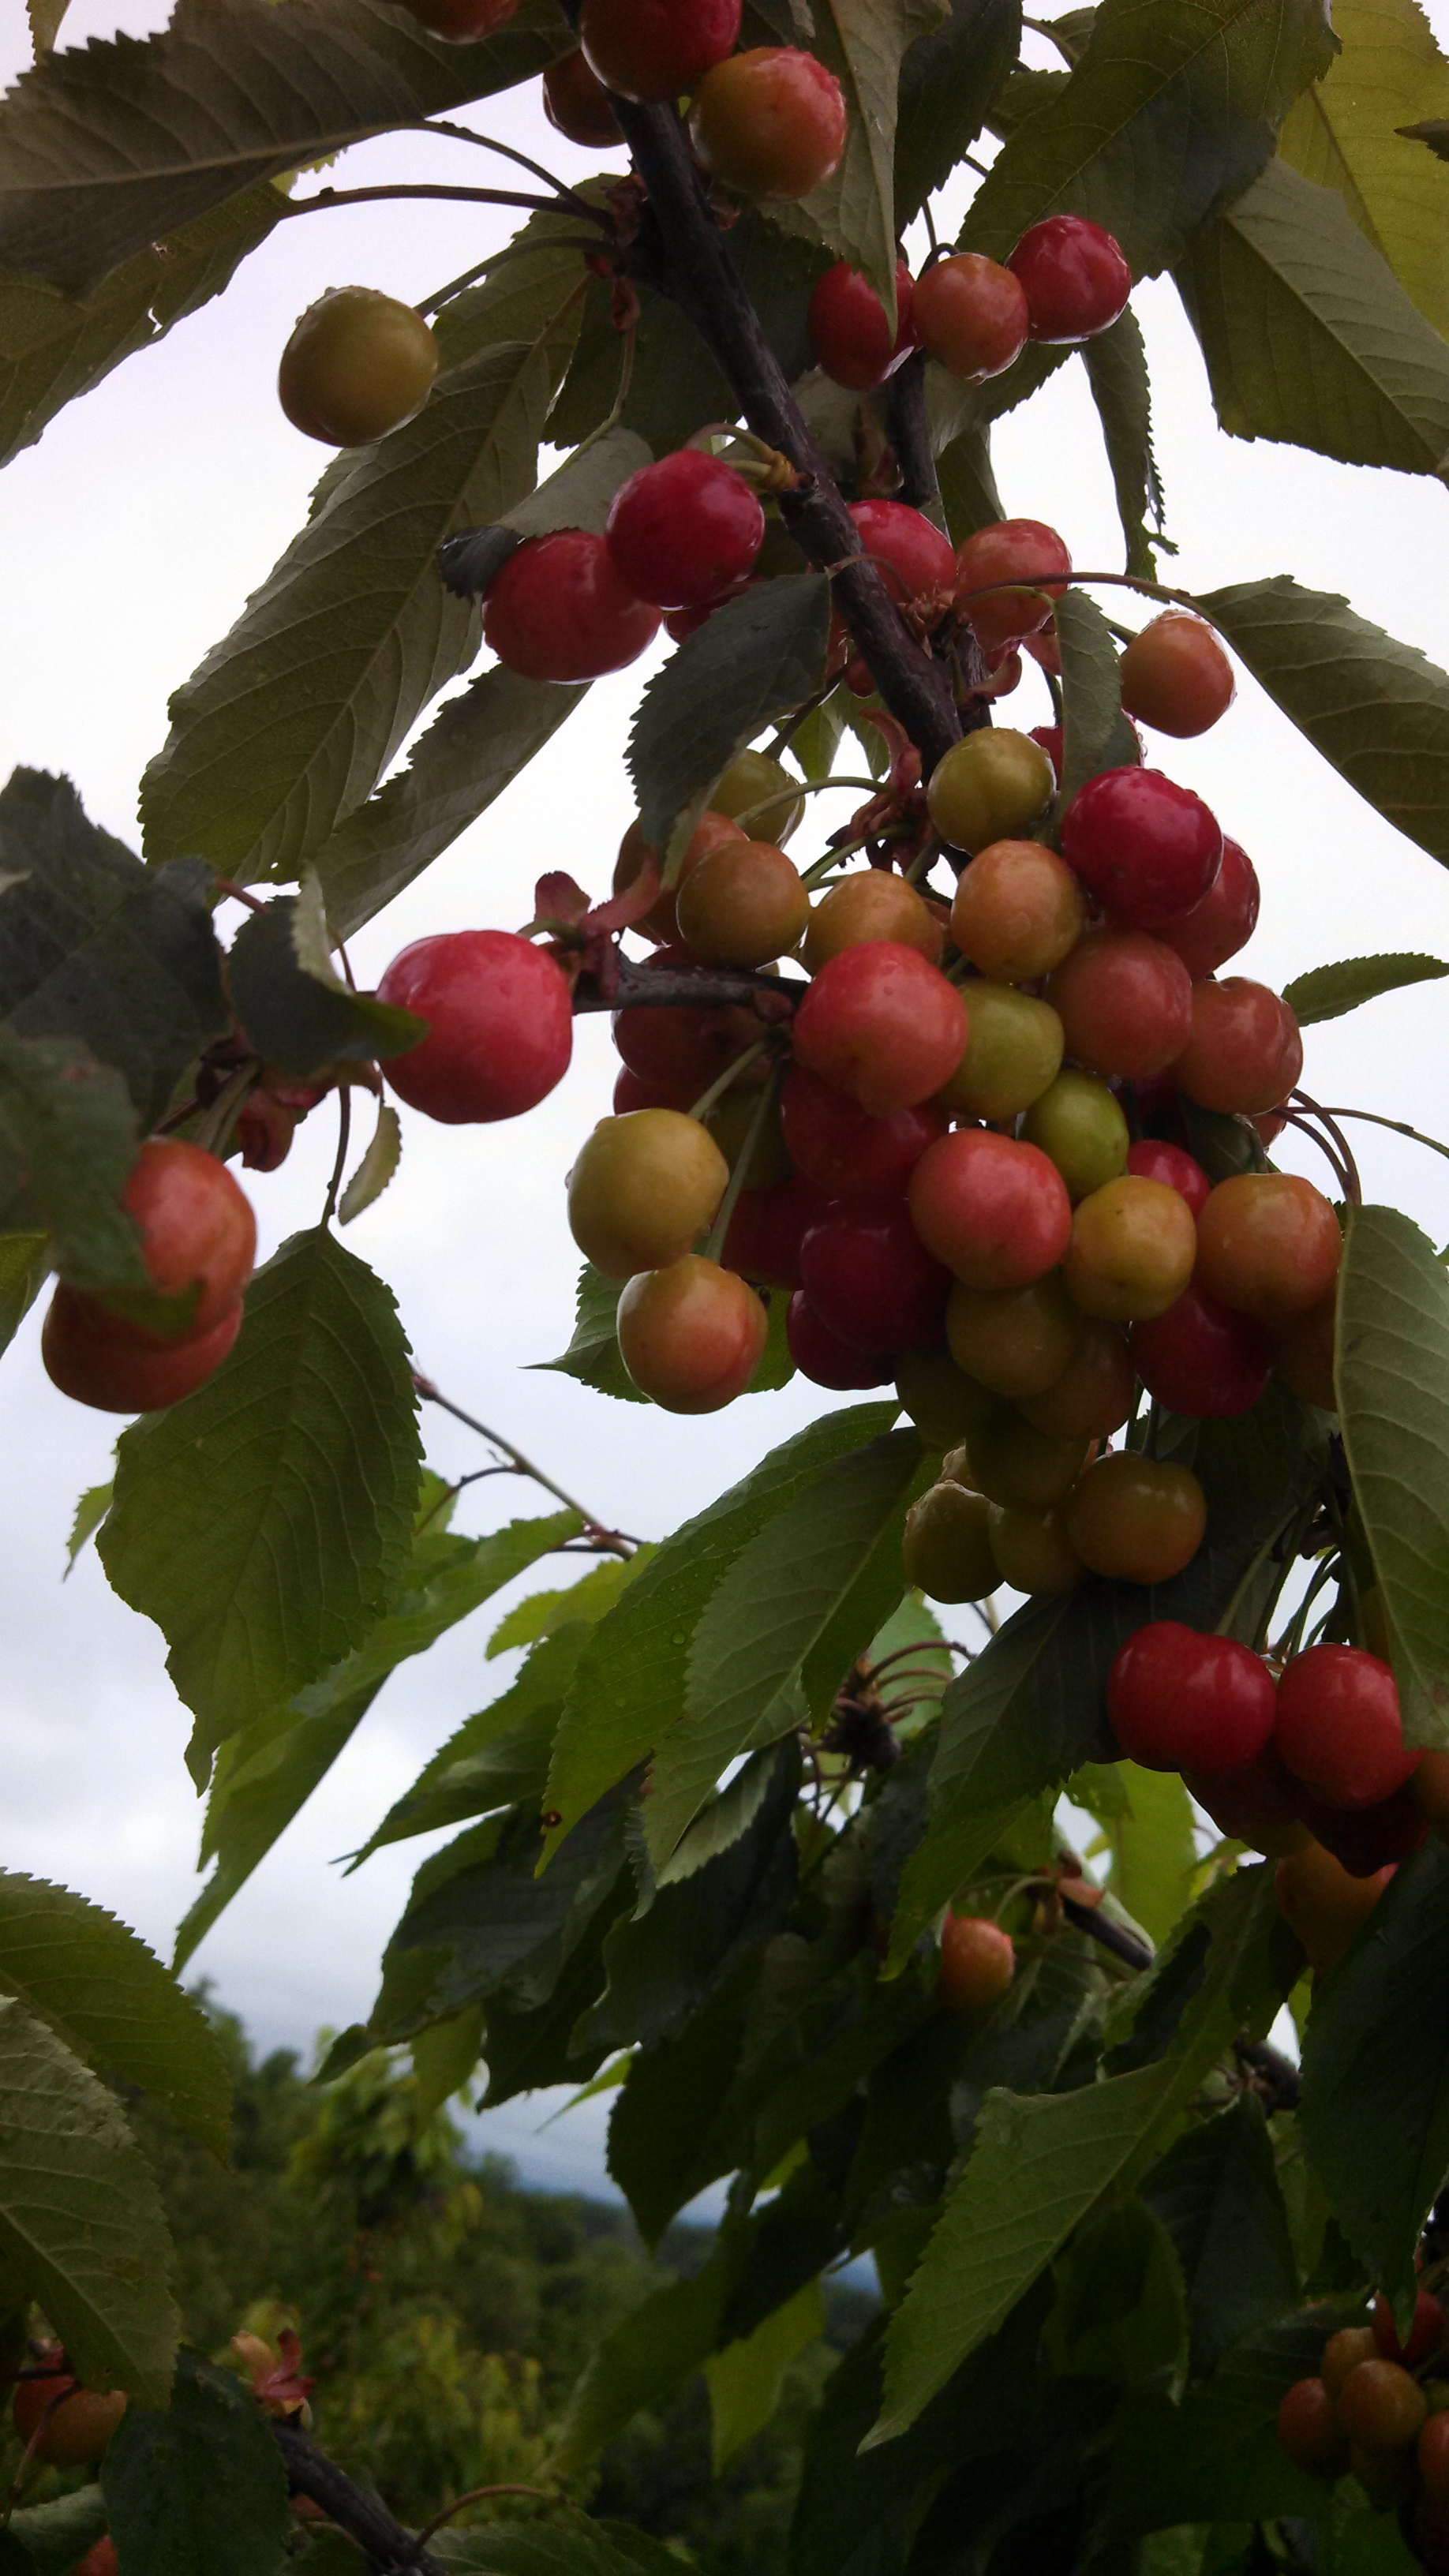 Cherries ready to be picked